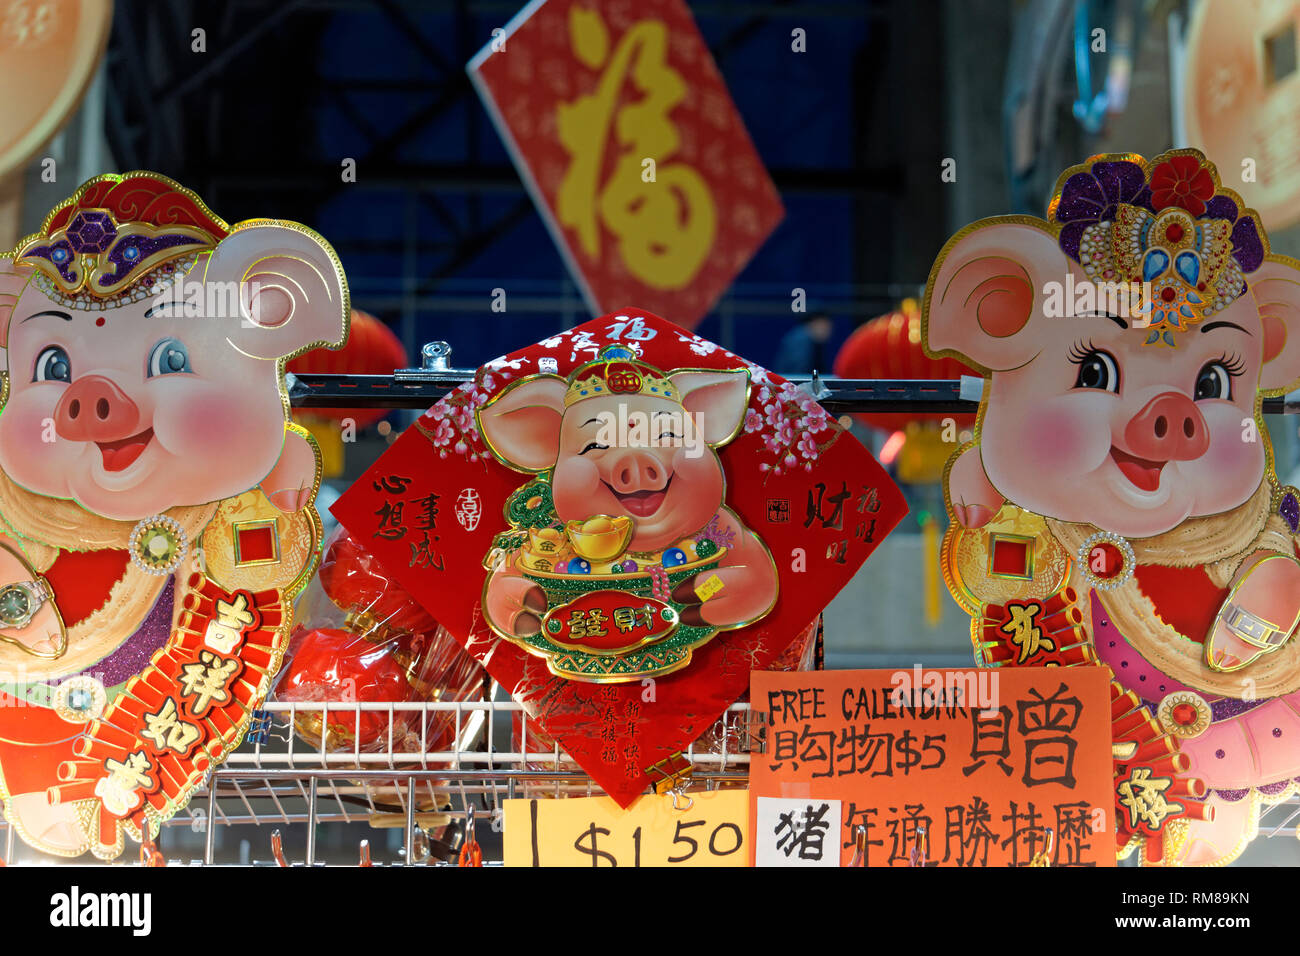 year-of-the-pig-2019-decorations-chinese